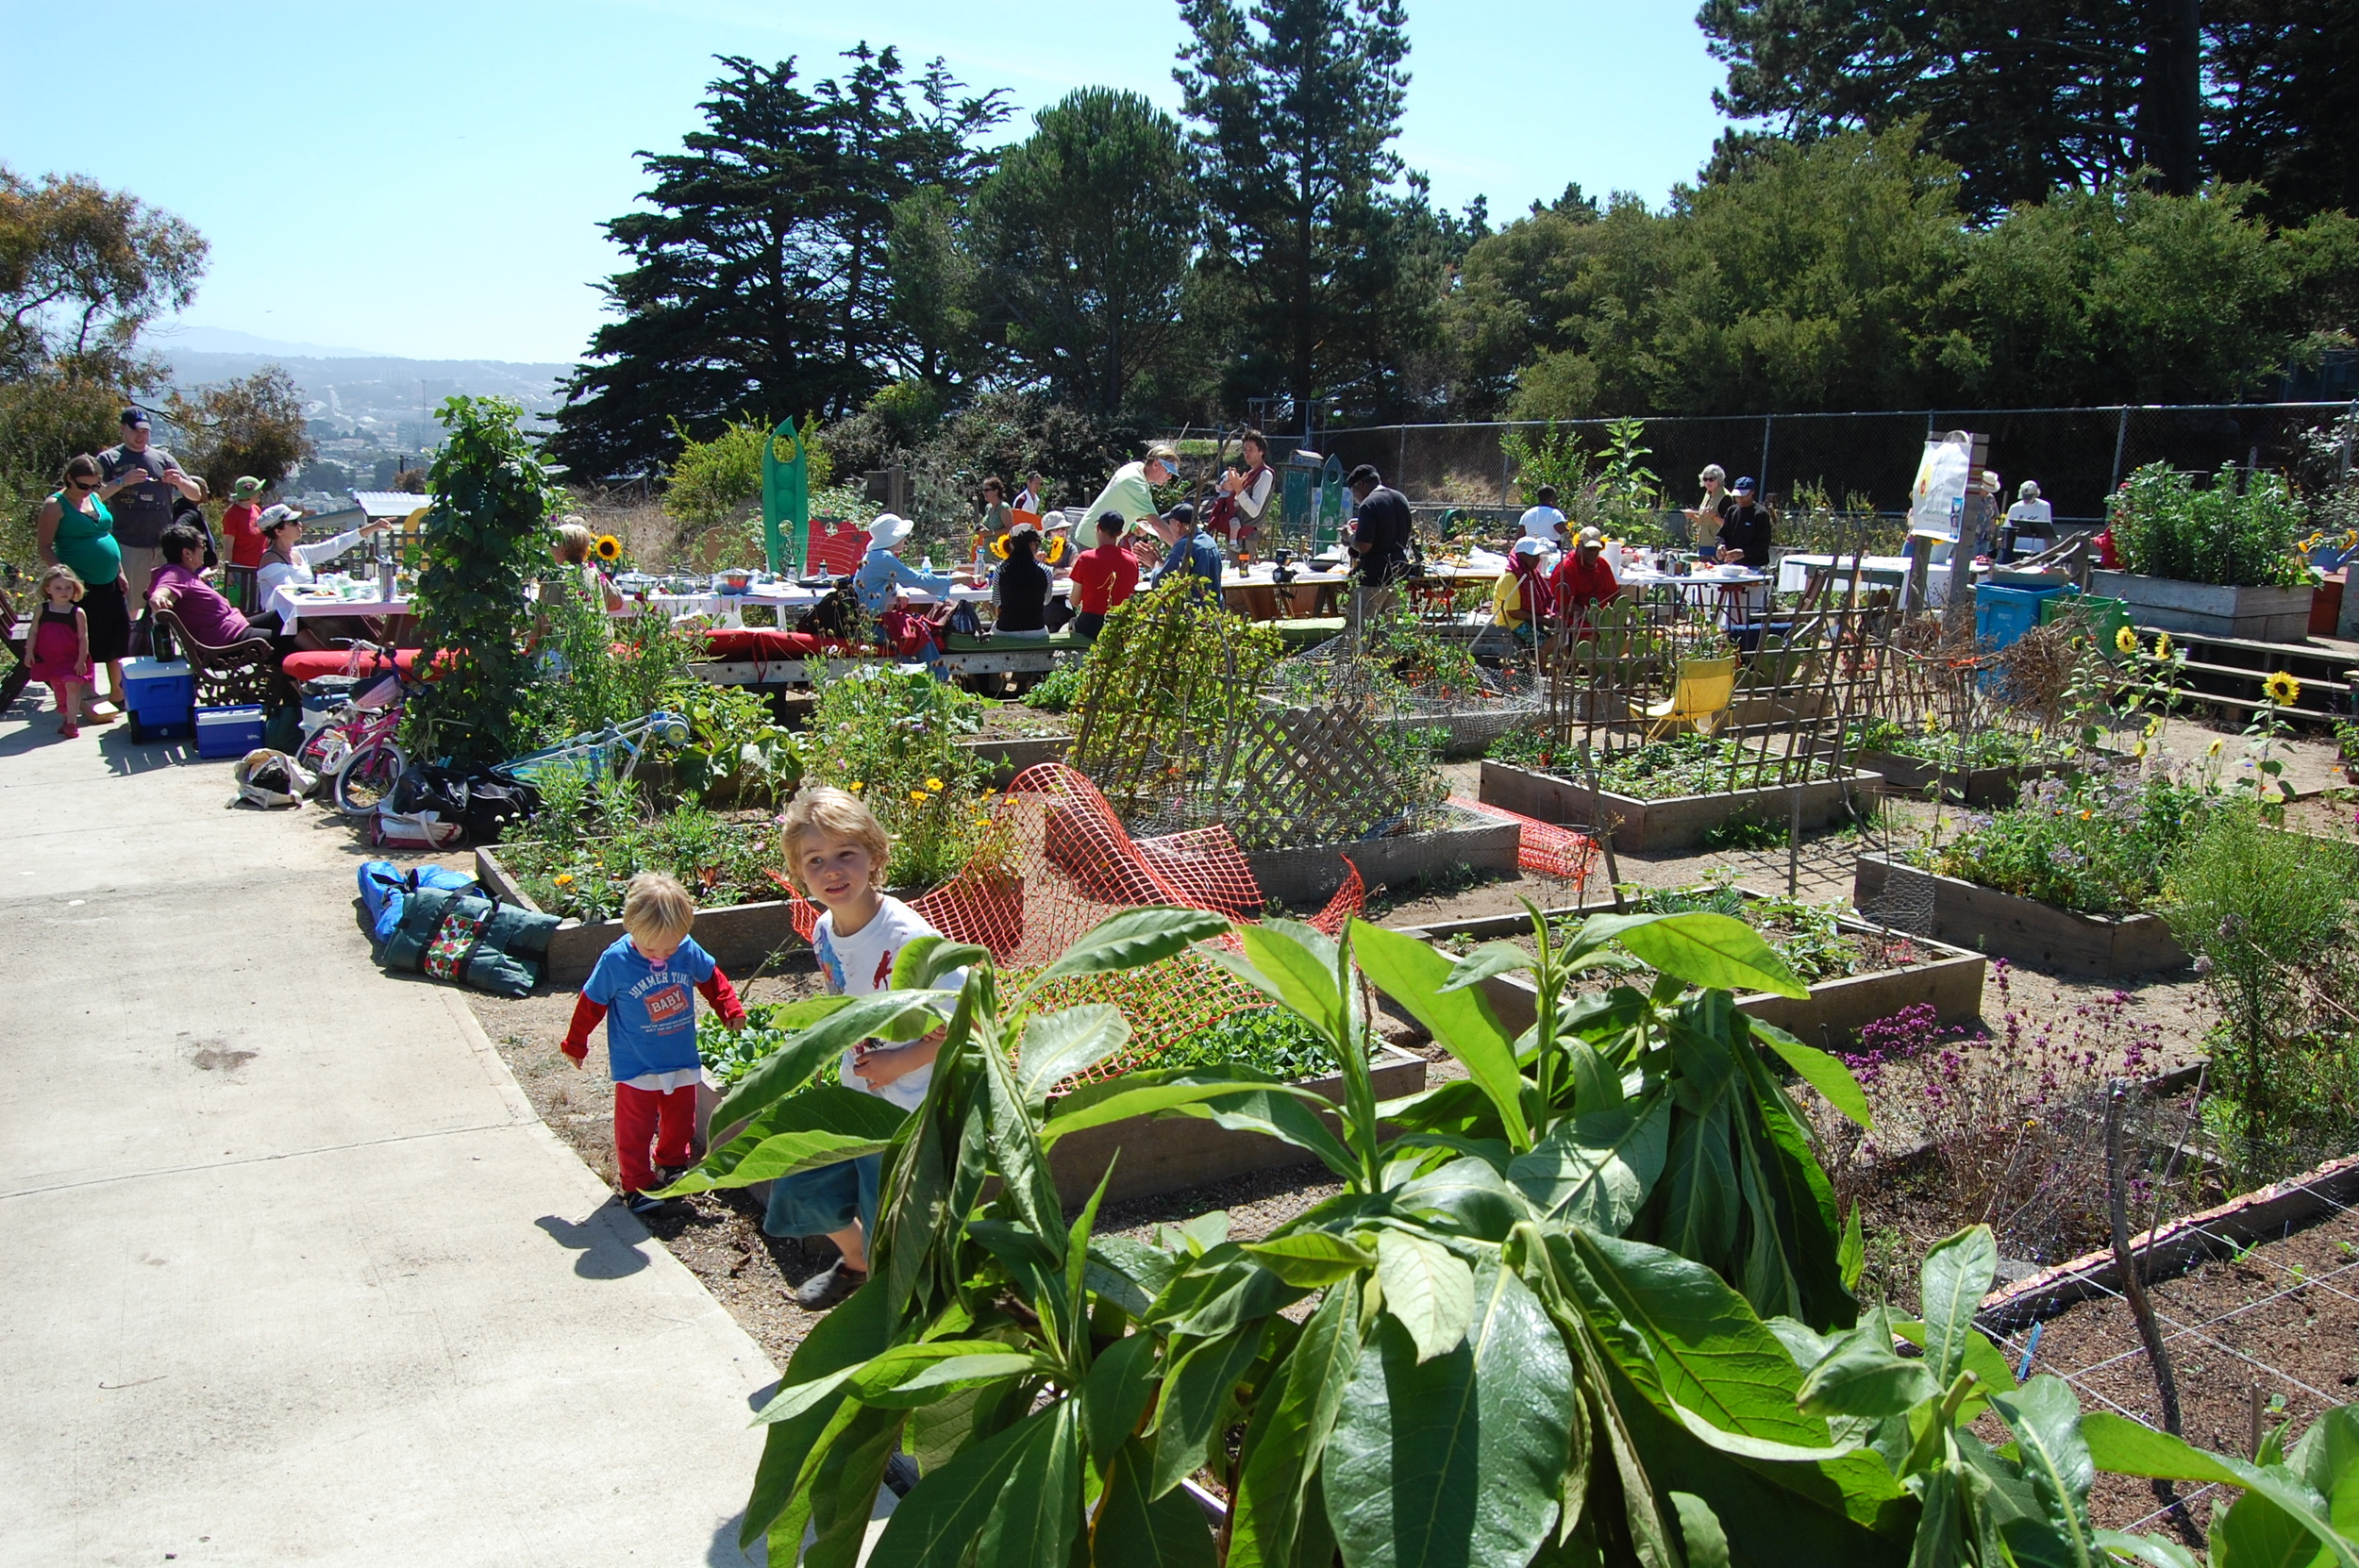 Brooks Park has a community garden and sweeping views of the Pacific Ocean, the Farralones and Mt. Tamalpais.